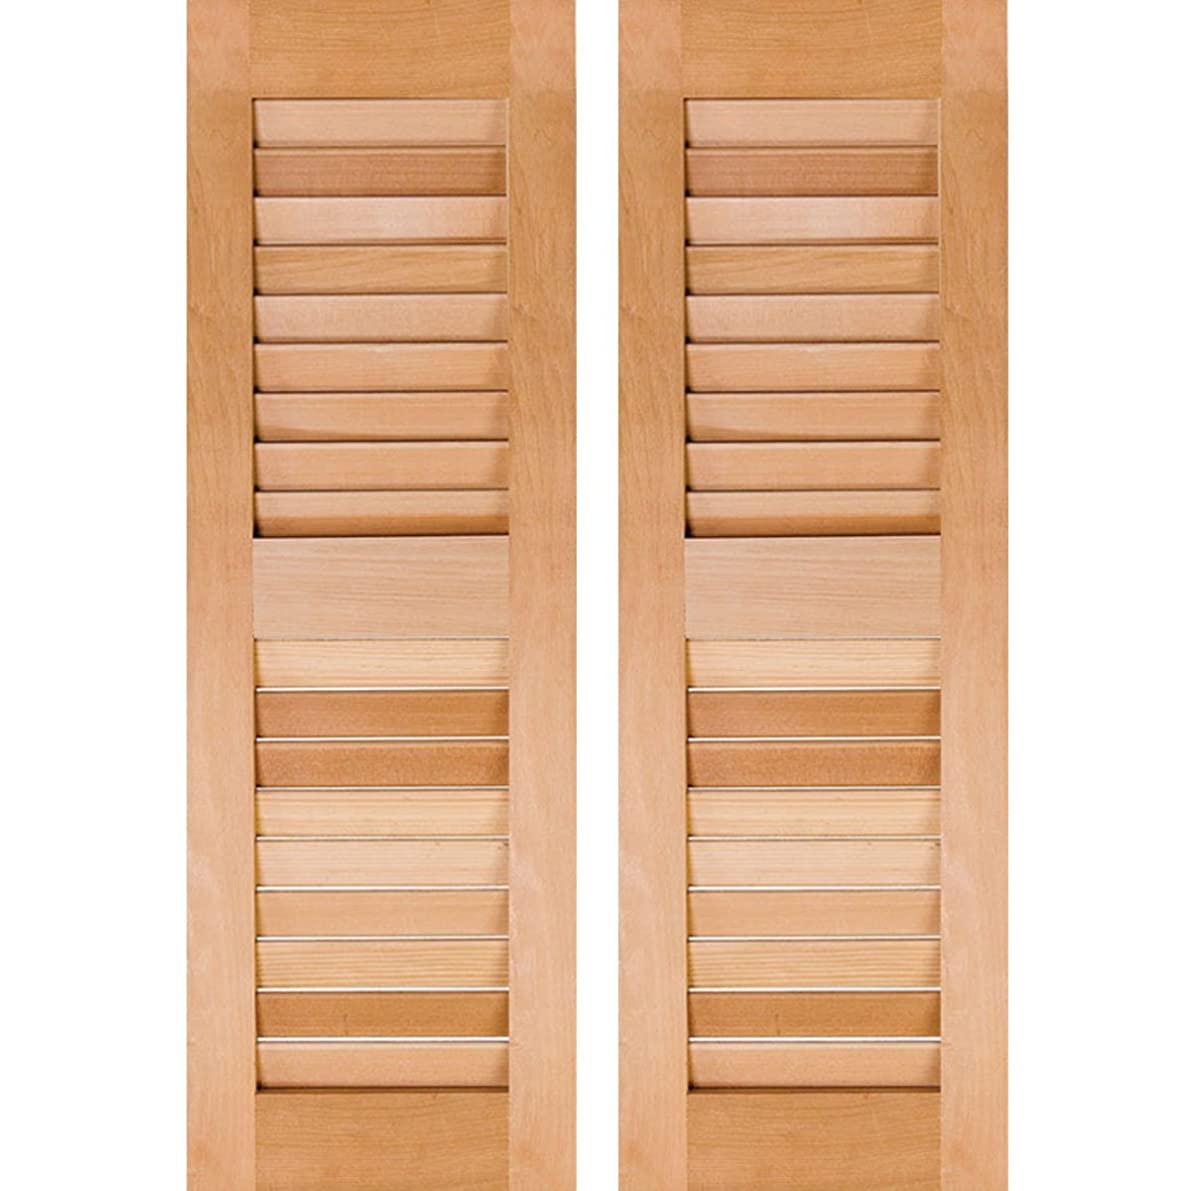 Ekena Millwork RWL15X029UNP Exterior Real Wood Pine Louvered Shutters (Per Pair), Unfinished, 15